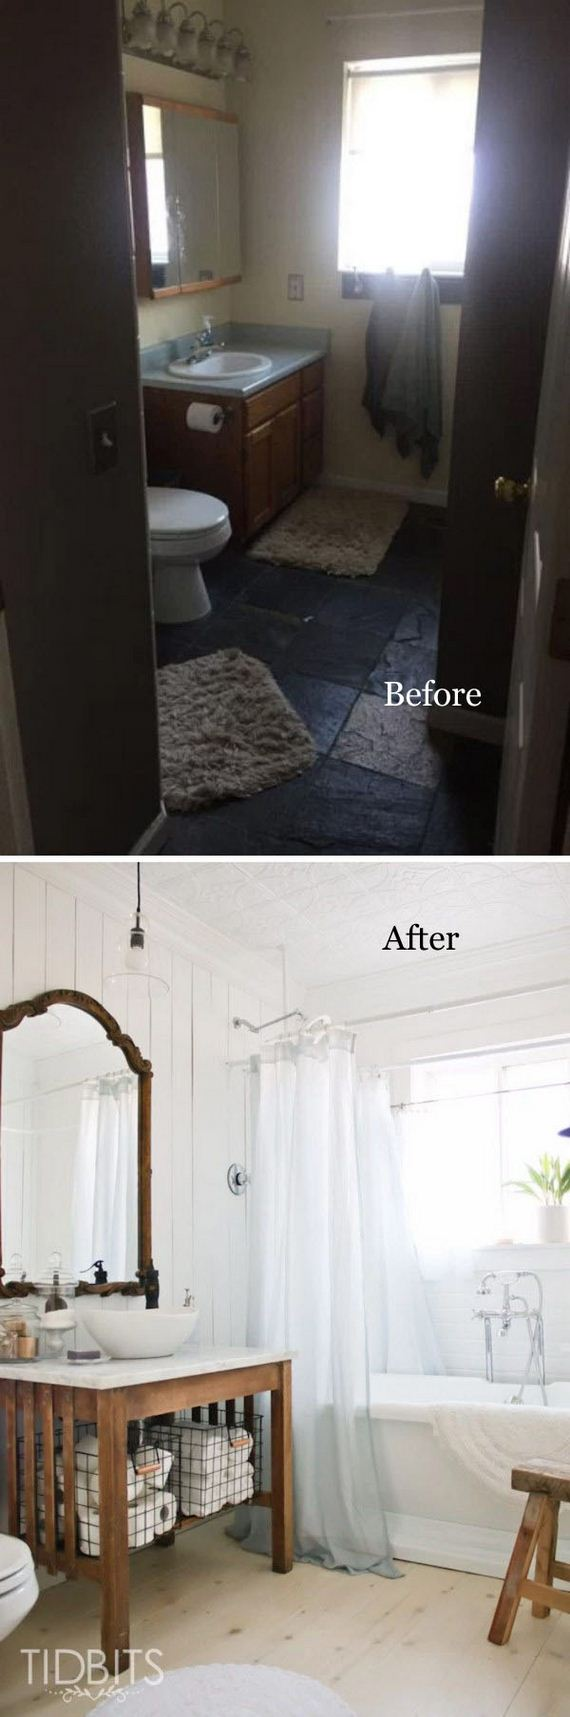 05-awesome-bathroom-makeovers